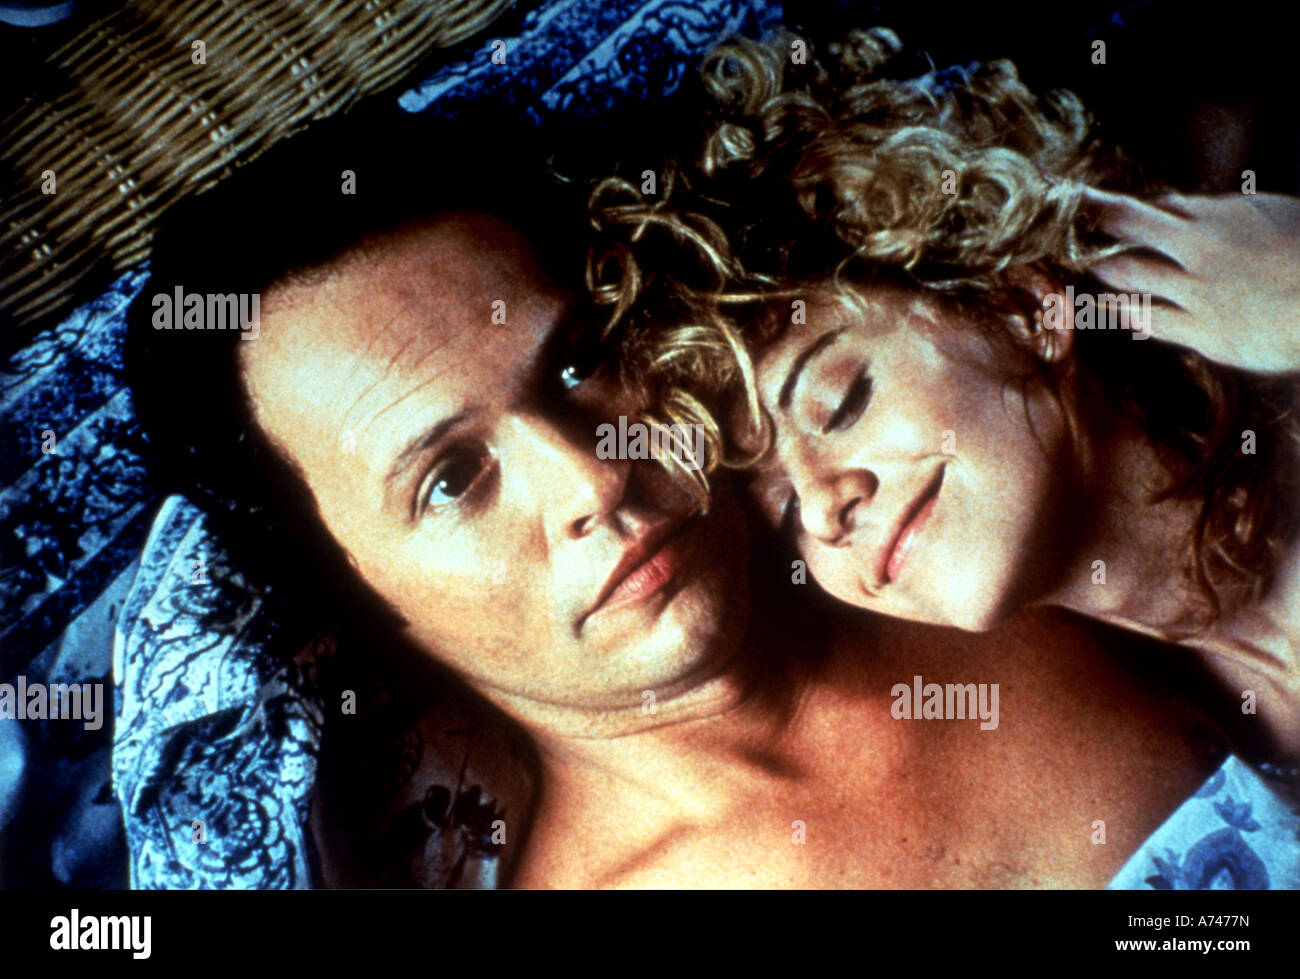 WHEN HARRY MET SALLY  1989 Palace/Castle Rock film with Meg Ryan and Billy Crystal - Stock Image